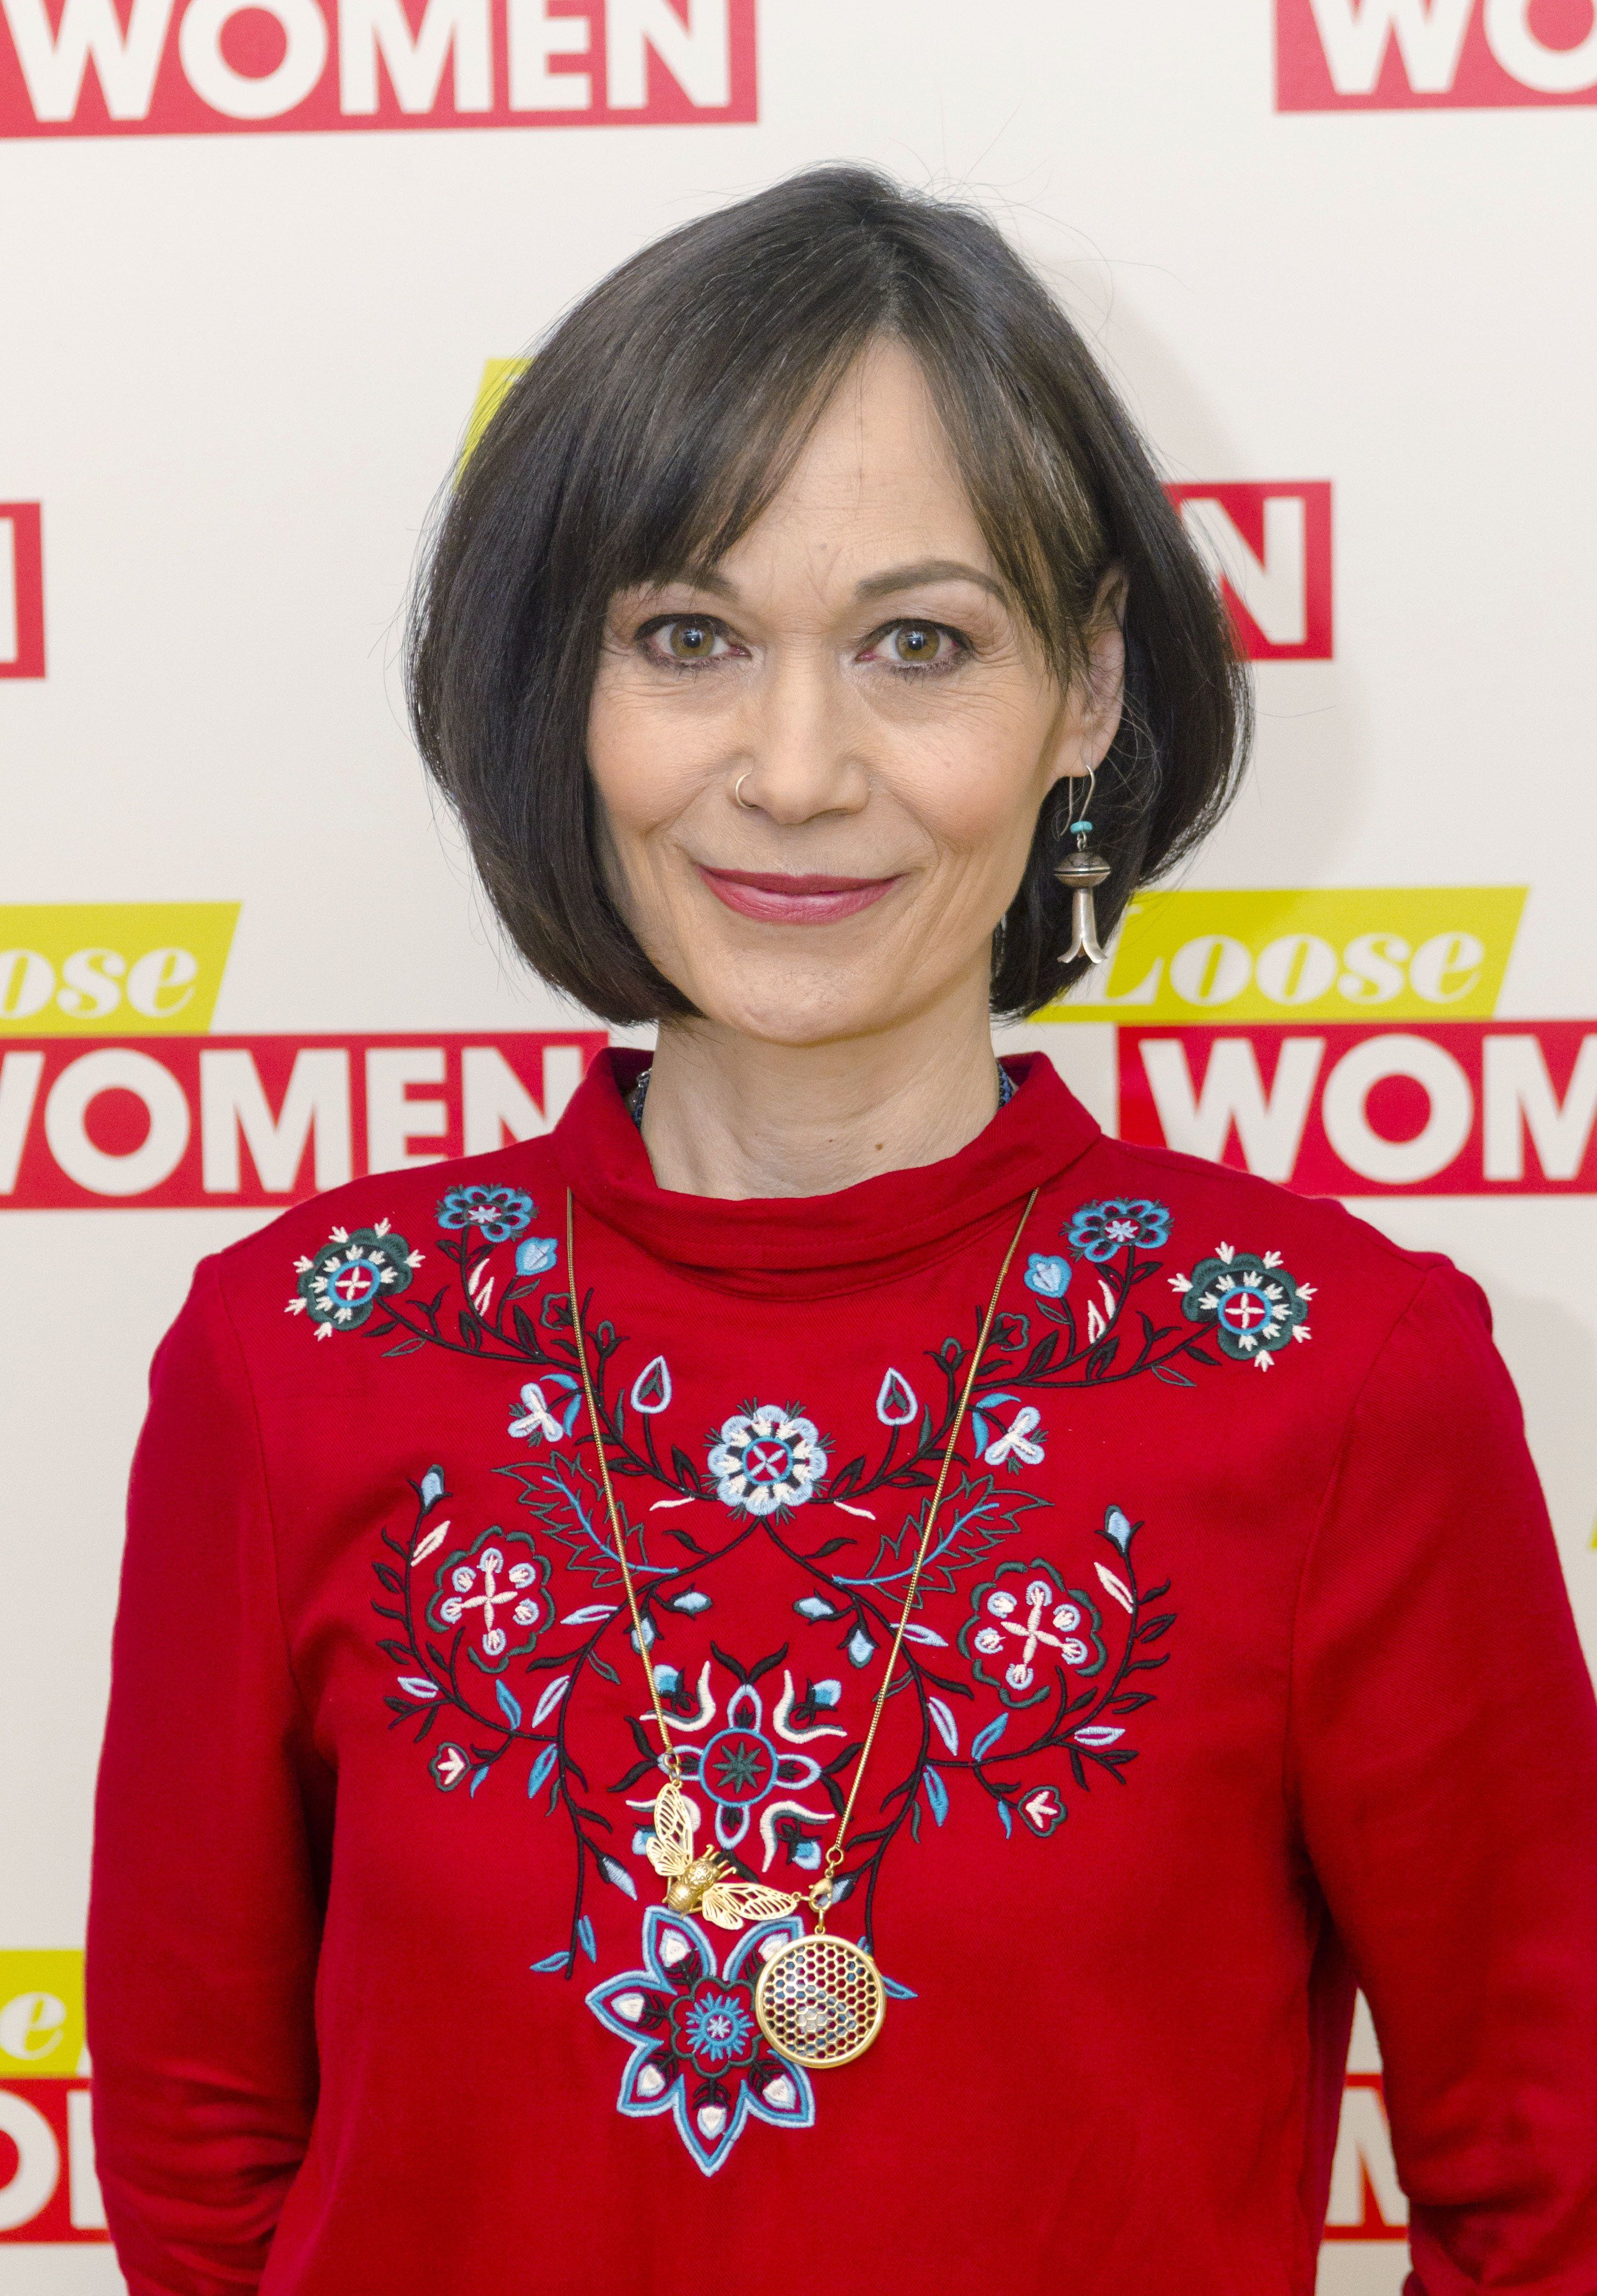 Leah Bracknell Hints At Use Of Marijuana To Ease Cancer Symptoms